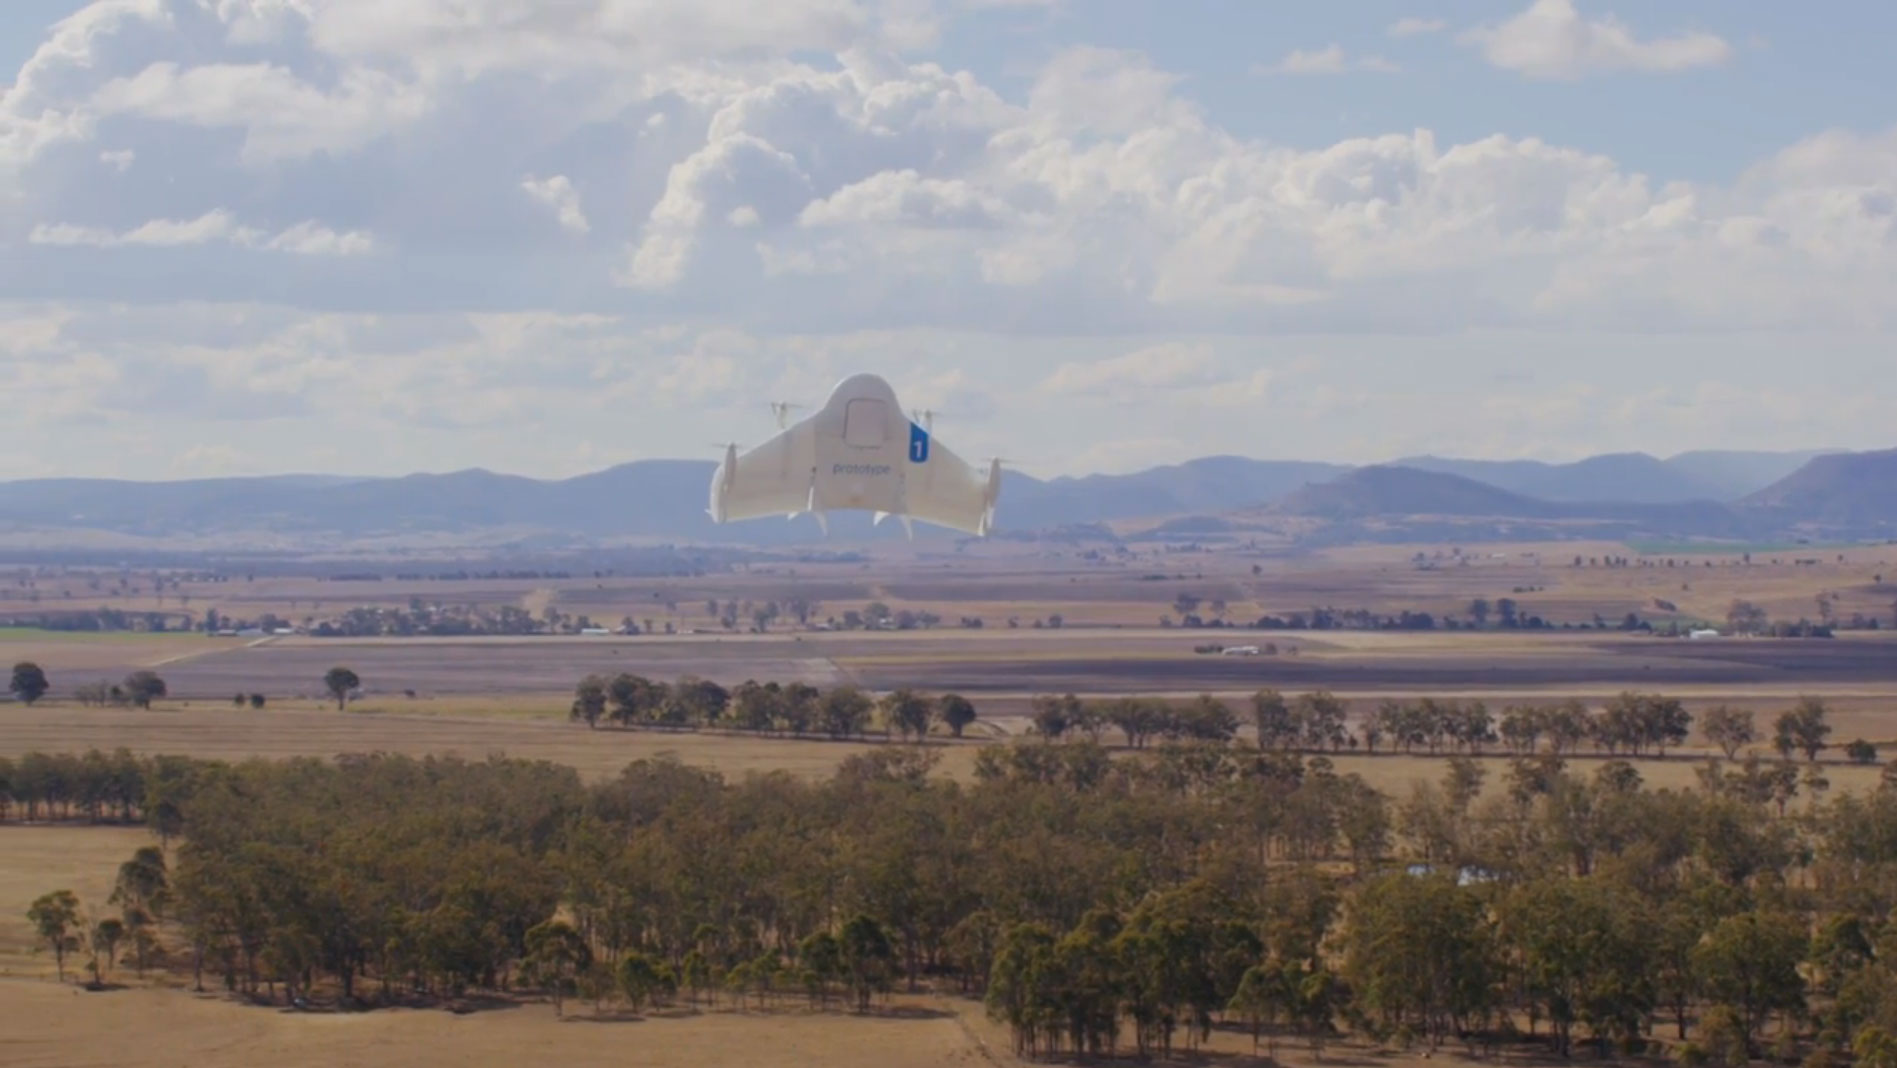 Google's Project Wing drone